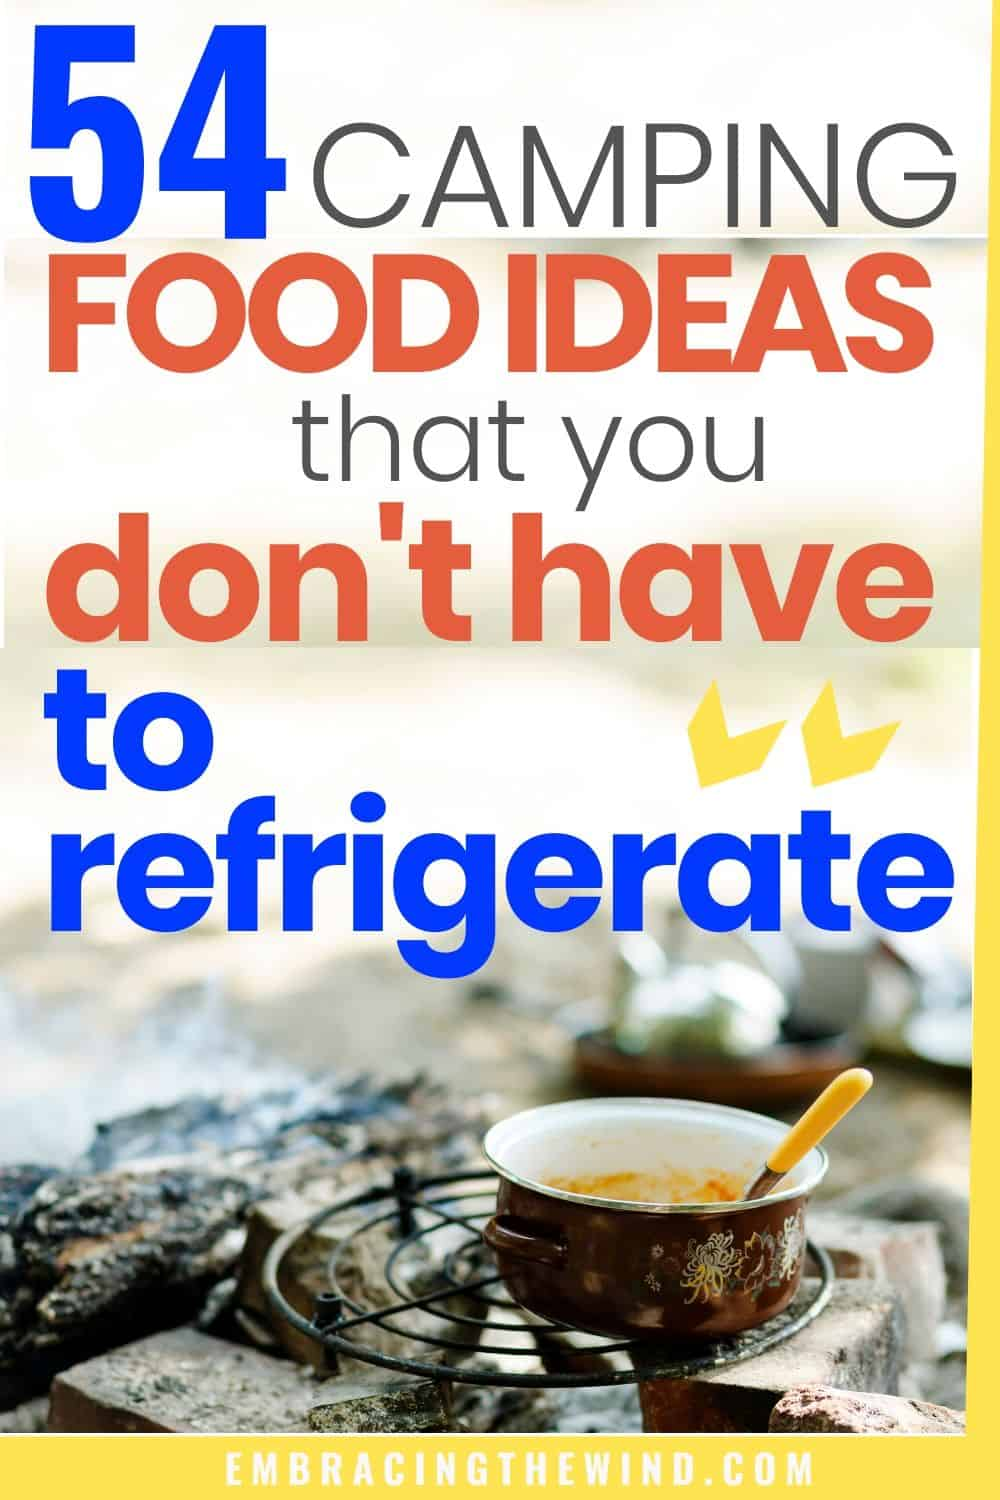 Camping food ideas no refrigeration